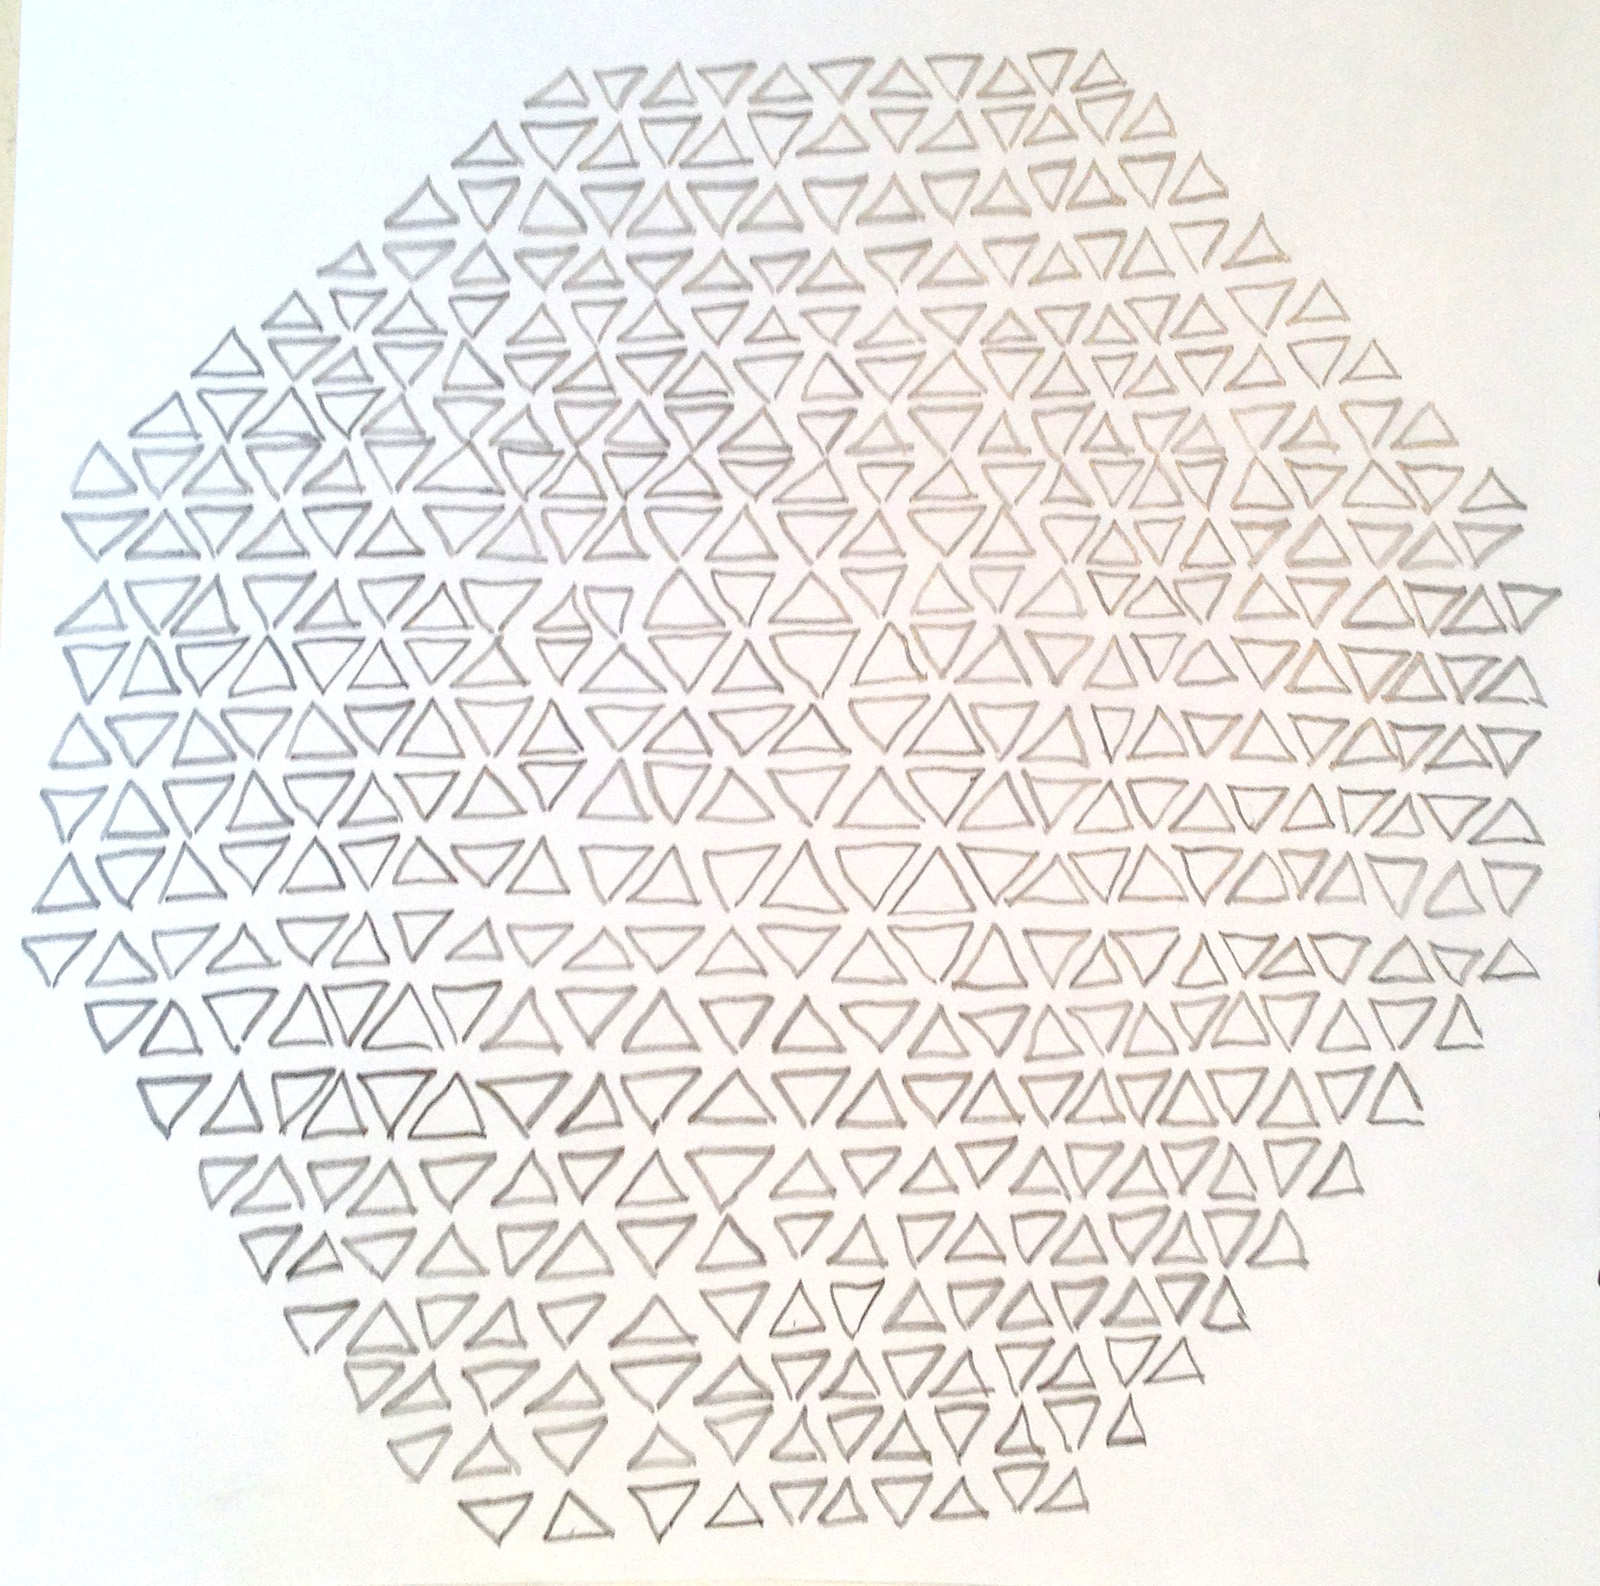 """""""Tenuous Triangles #2,"""" 2012, pencil on paper, approx: 8in. x 8in."""